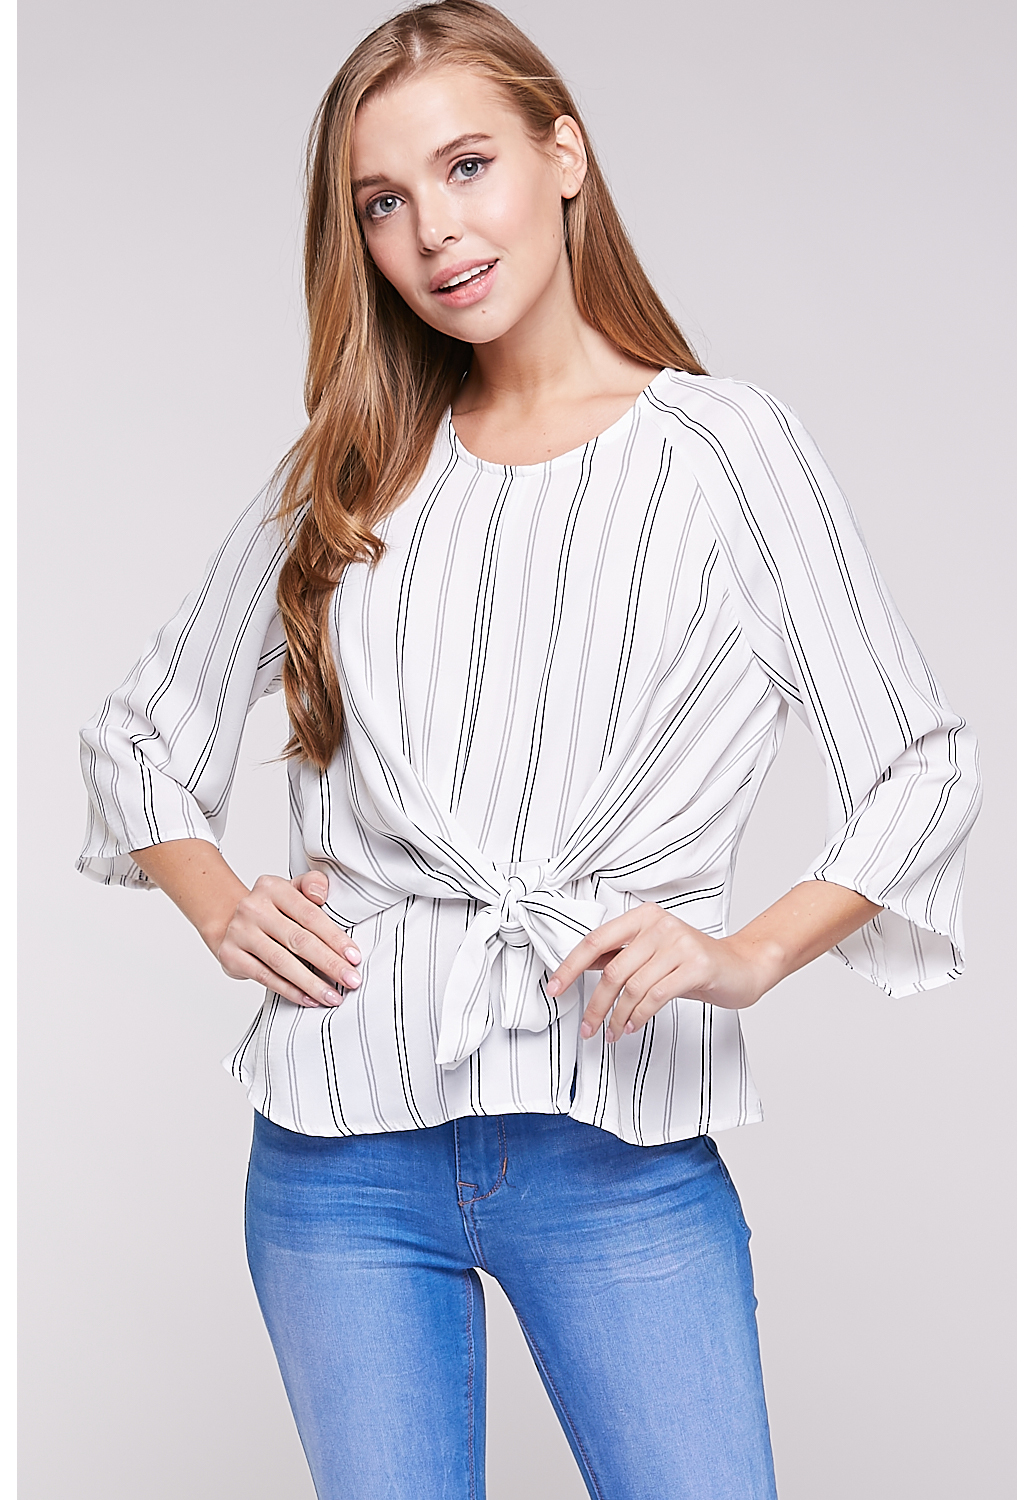 Pinstriped Tie Front Dressy Top